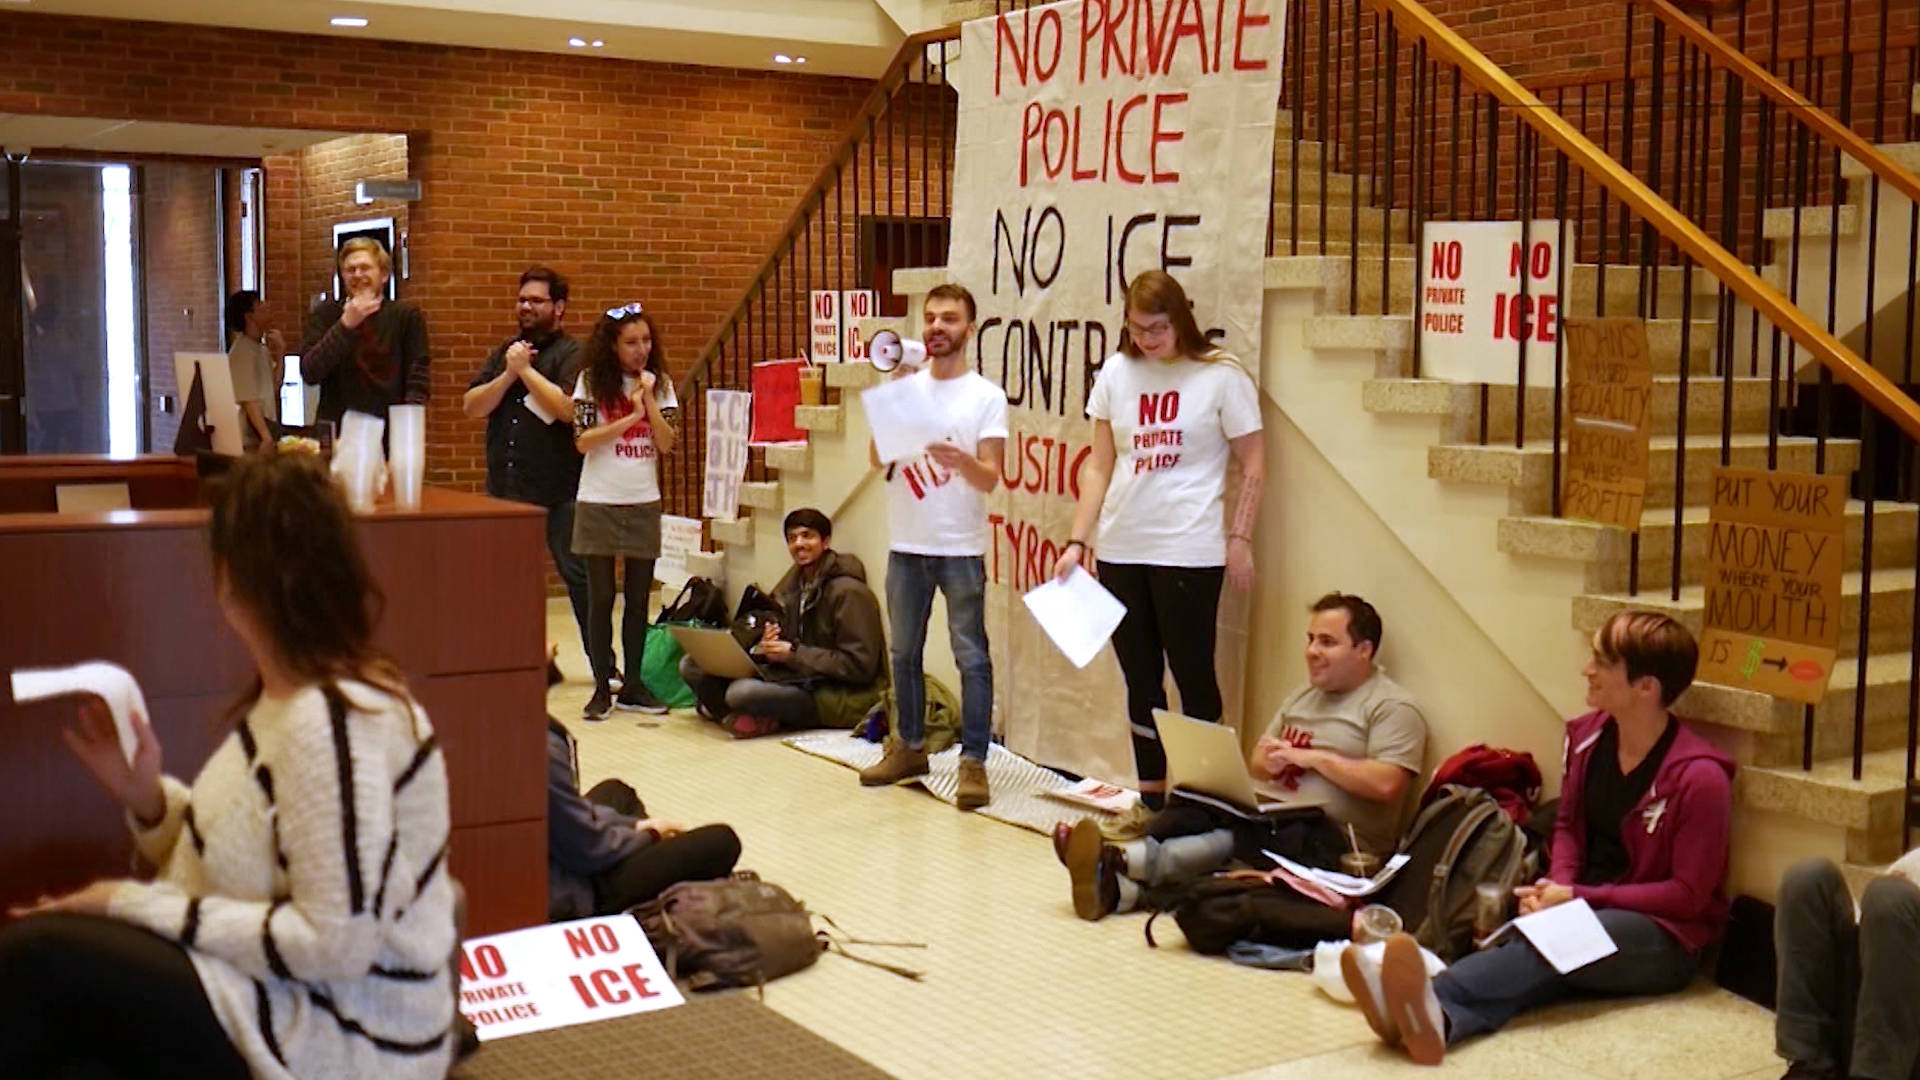 Johns Hopkins Students Enter Week 4 of Sit-In Protesting ICE